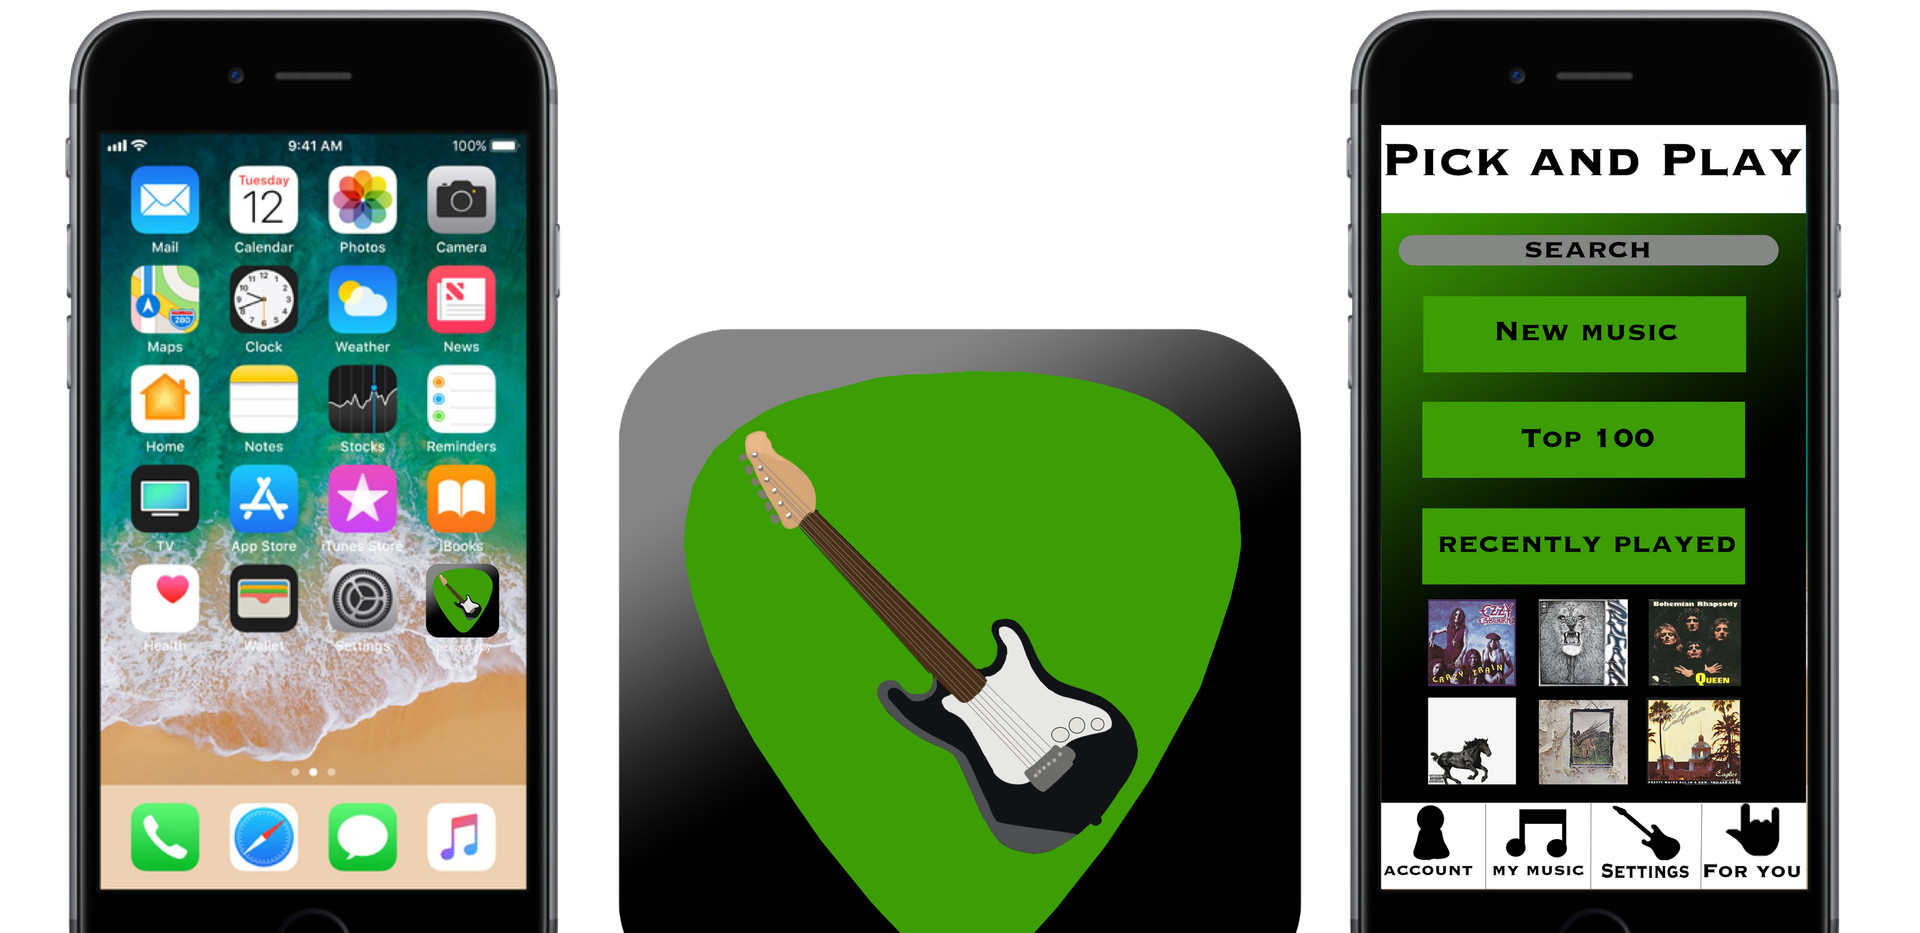 Pick and Play App Design